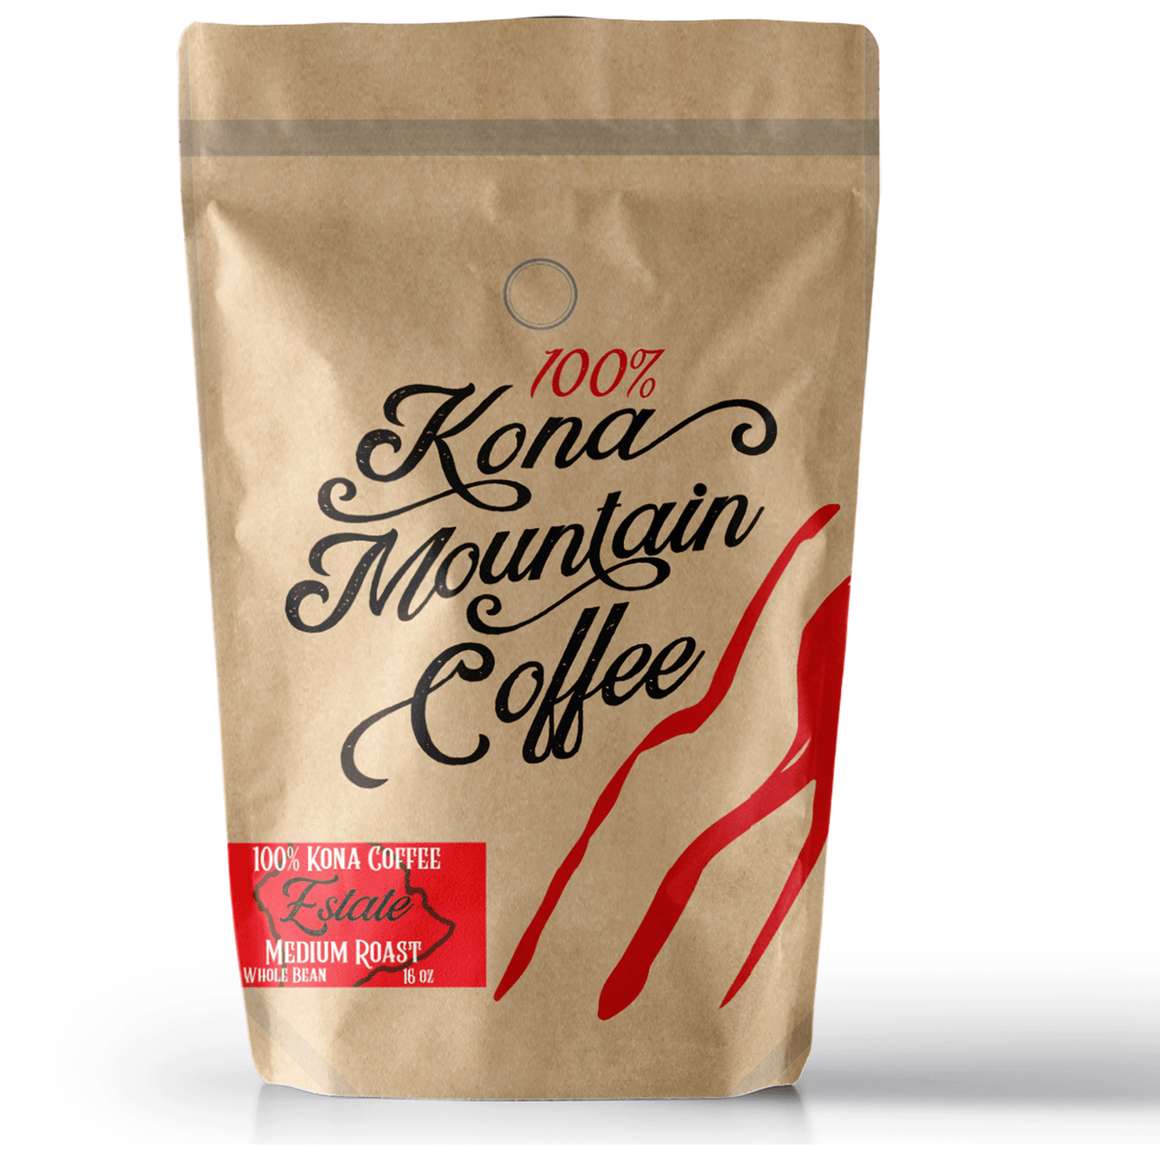 100% Kona Coffee Estate Medium Roast - Kona Mountain Coffee